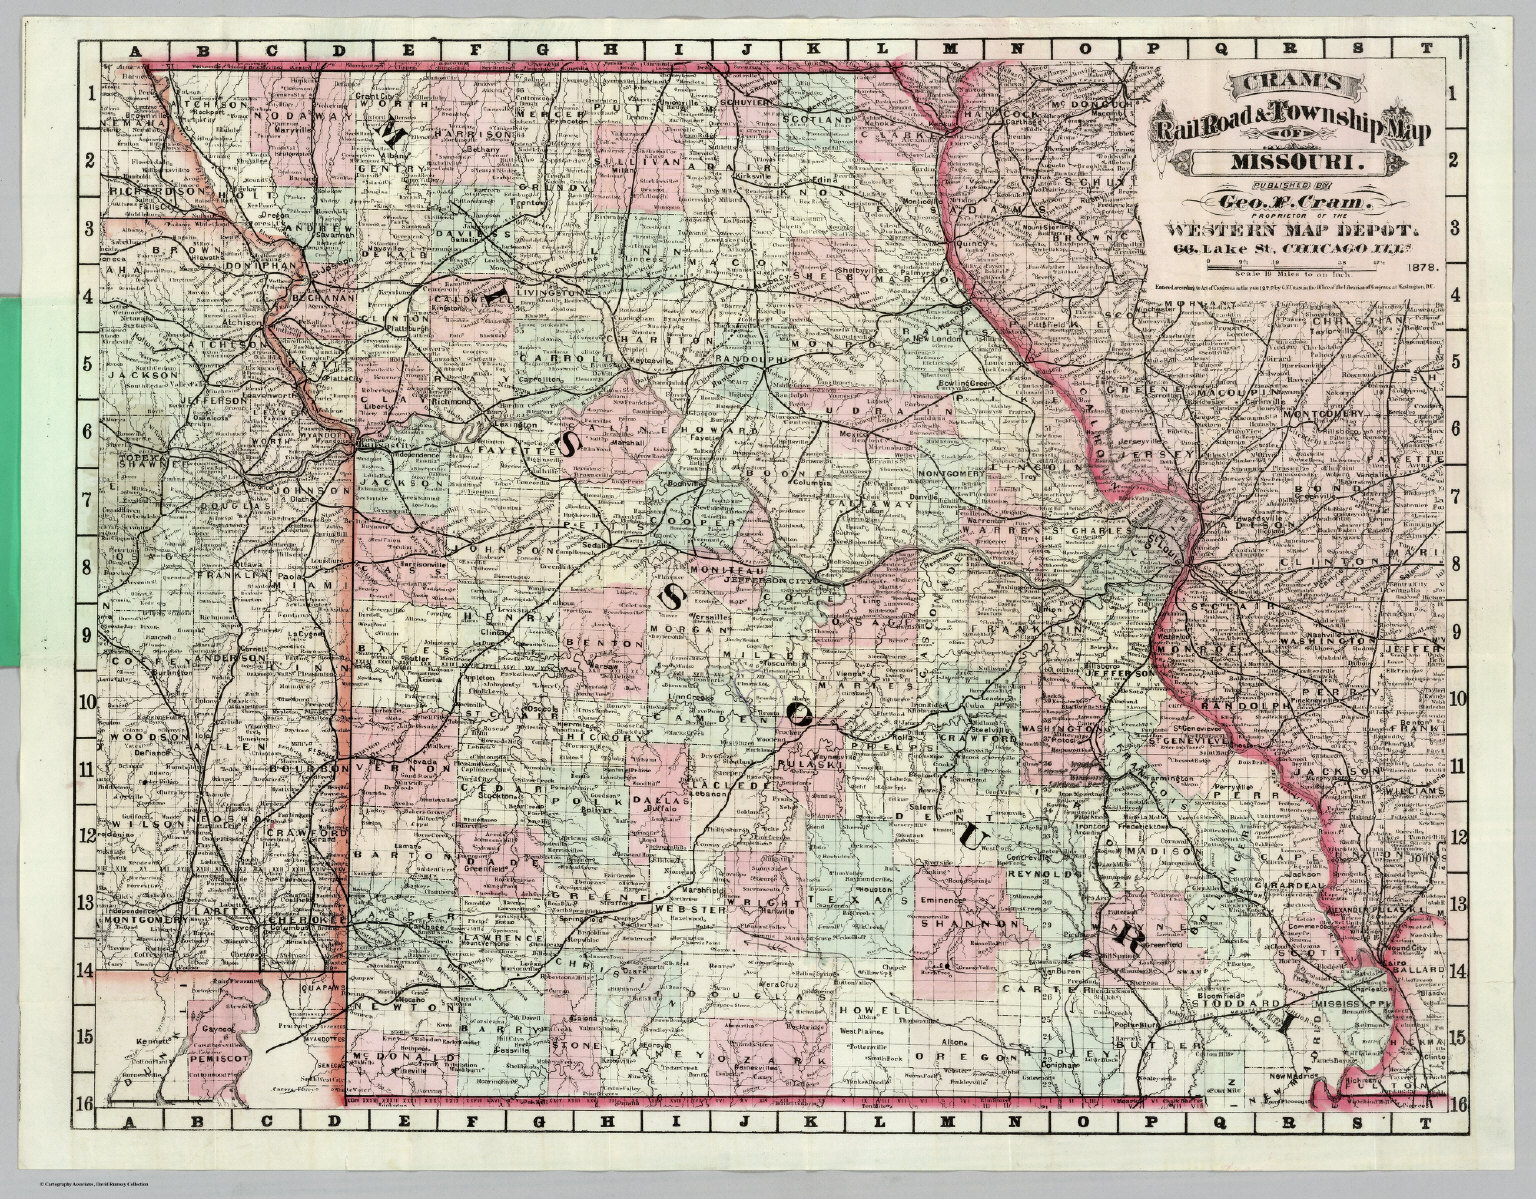 Rail Road And Township Map Of Missouri David Rumsey Historical - Road map of missouri